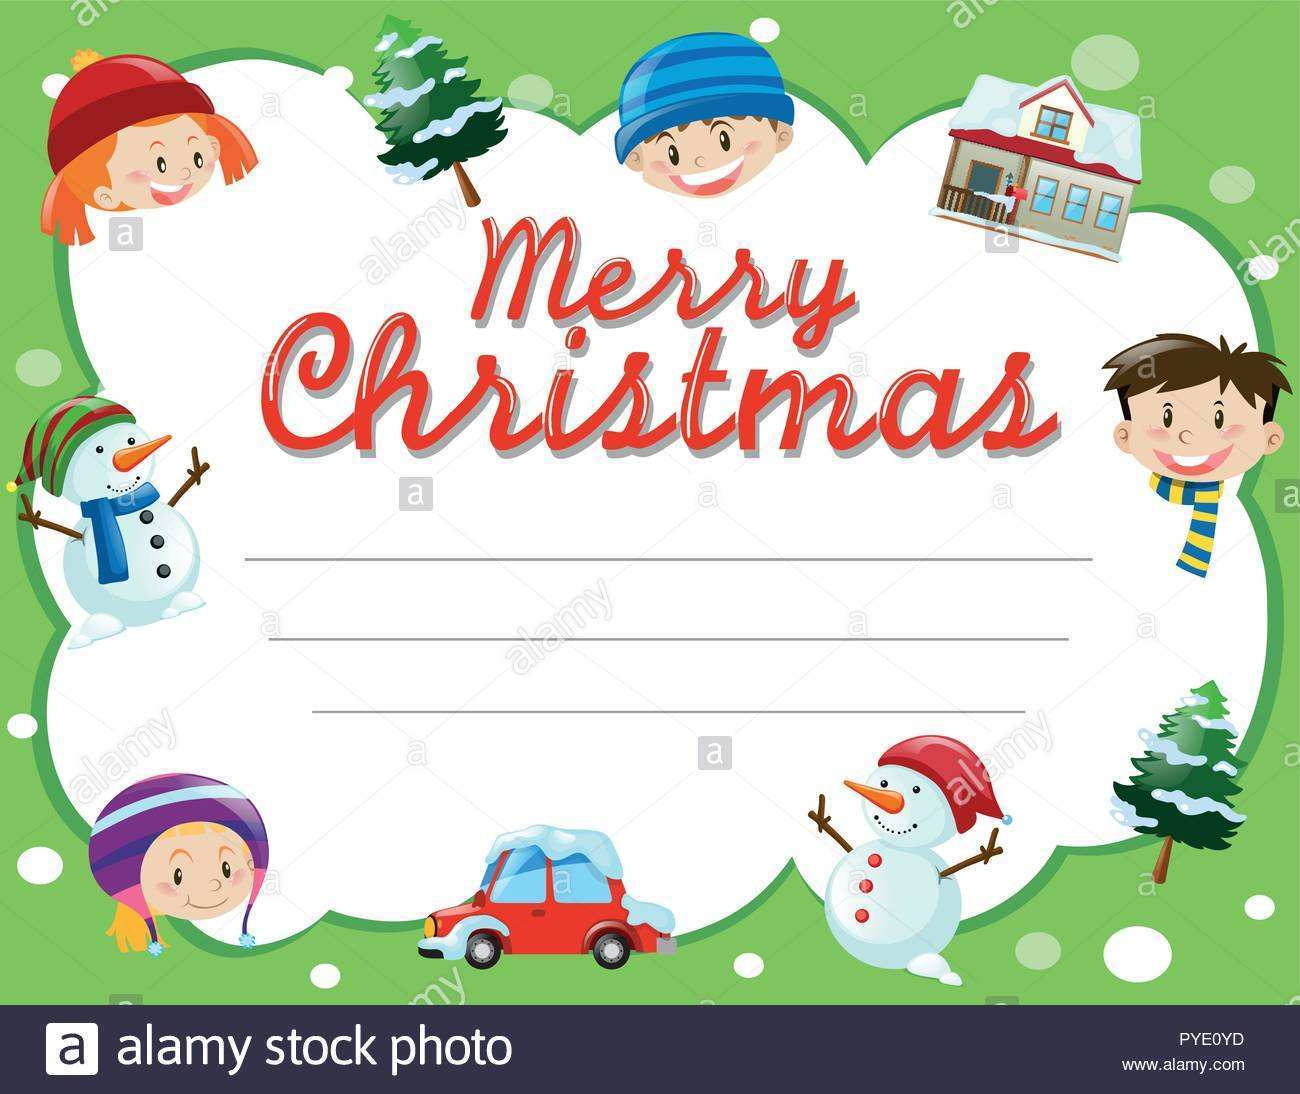 19 How To Create Christmas Card Templates For Schools With Stunning Design for Christmas Card Templates For Schools